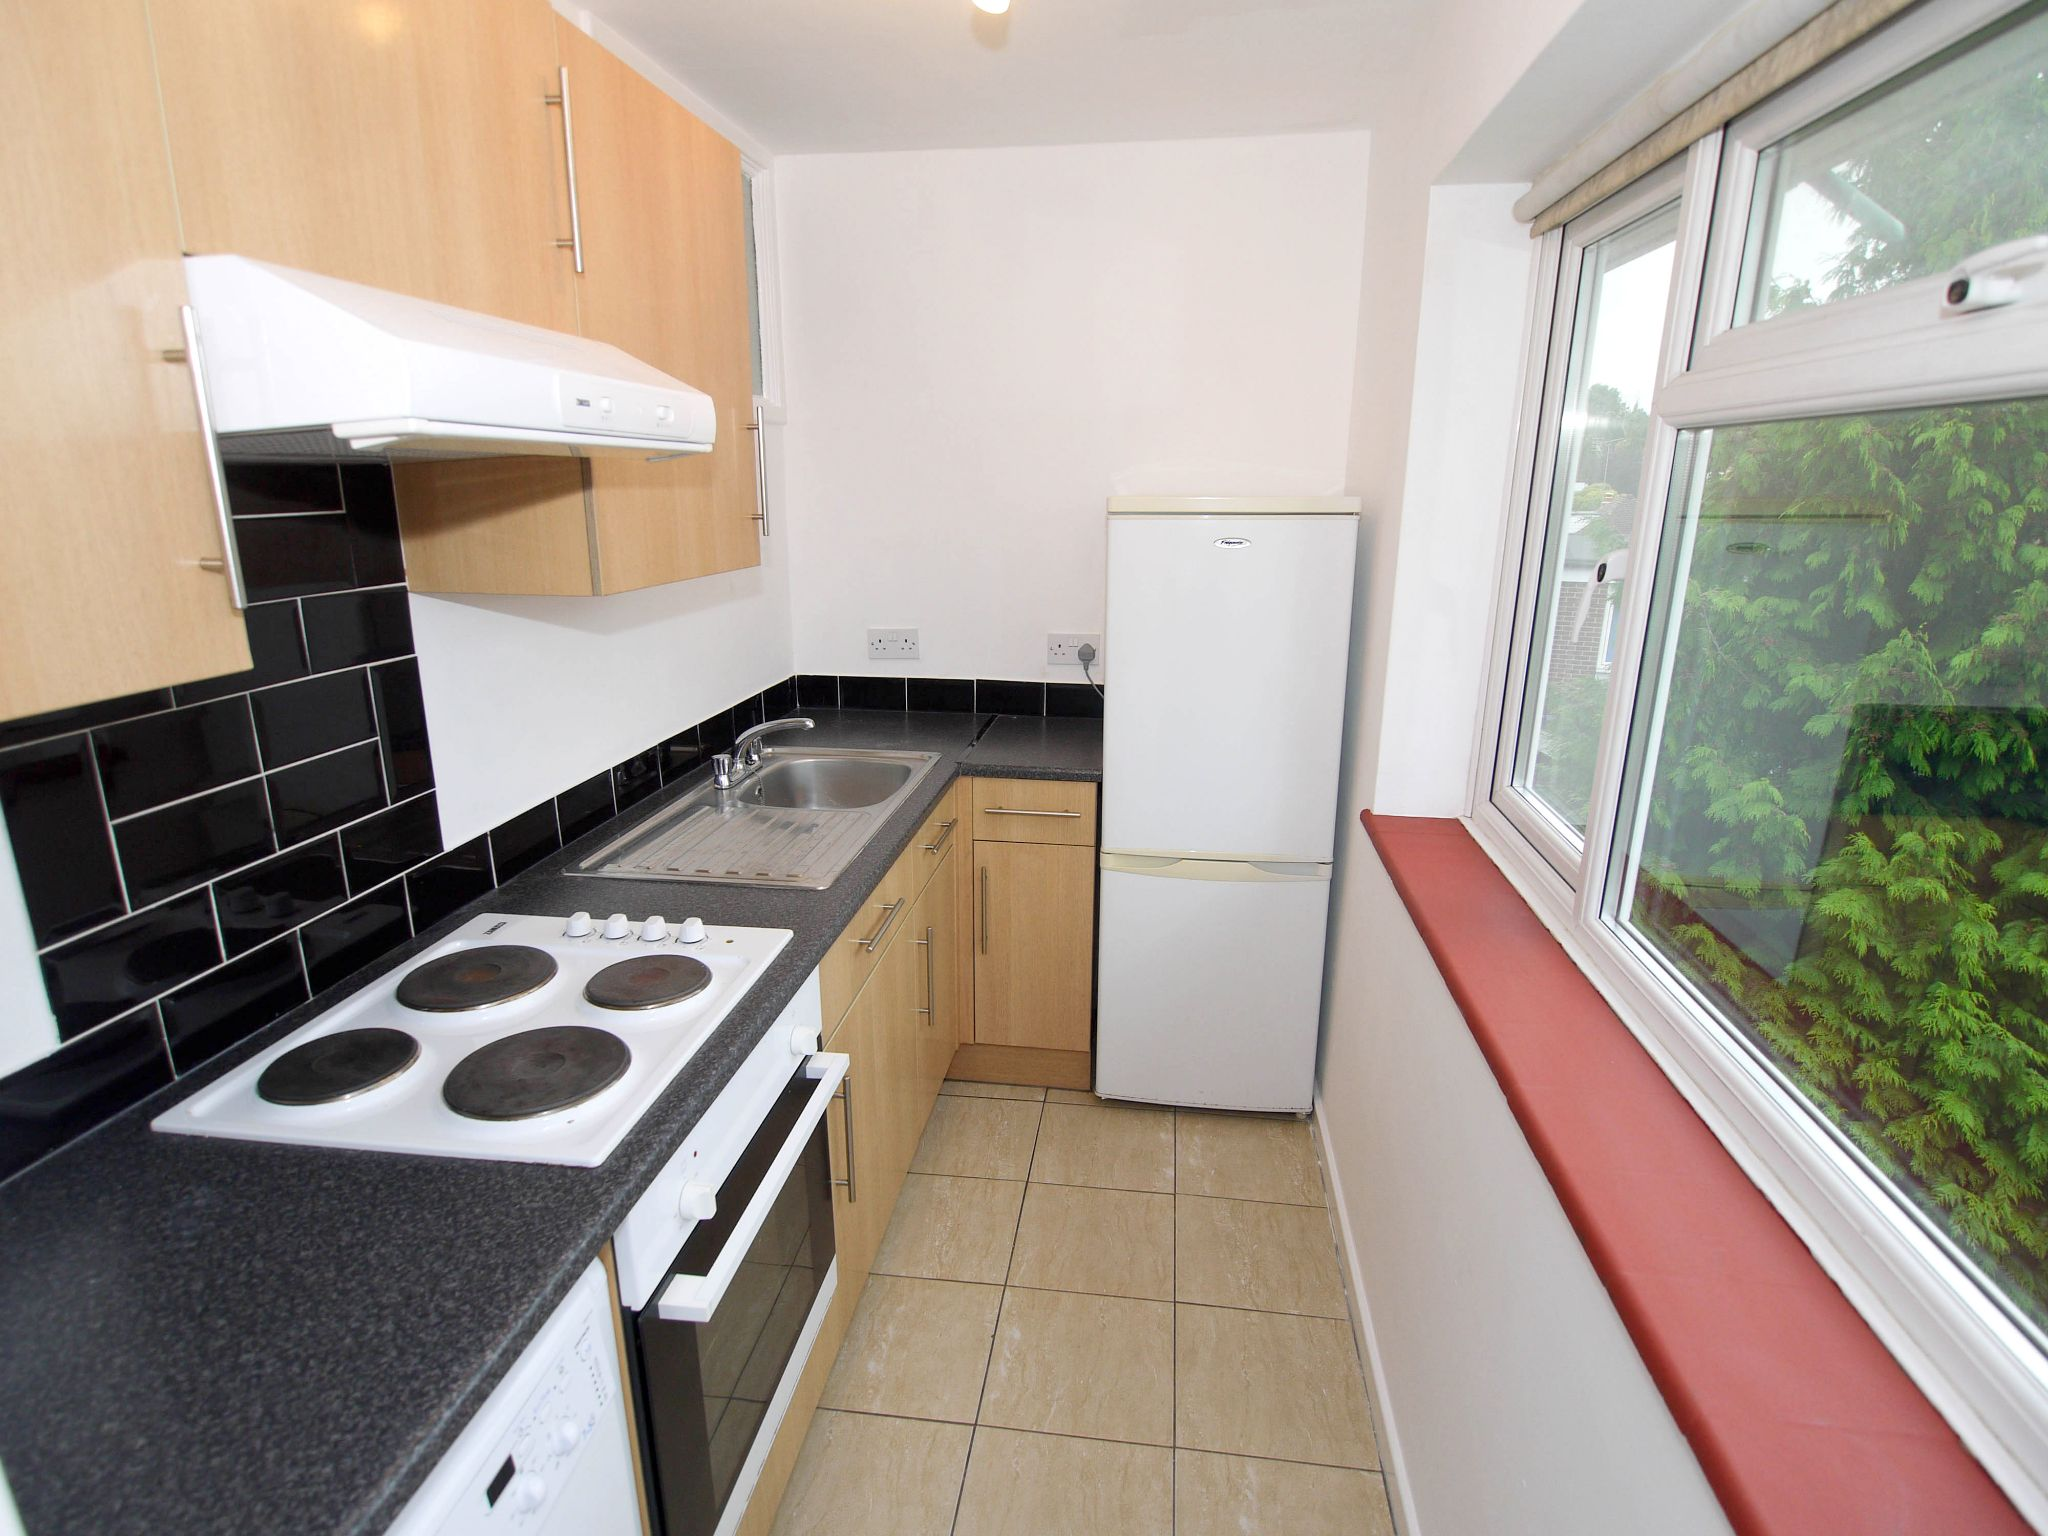 1 bedroom apartment flat/apartment Sale Agreed in Sevenoaks - Photograph 3